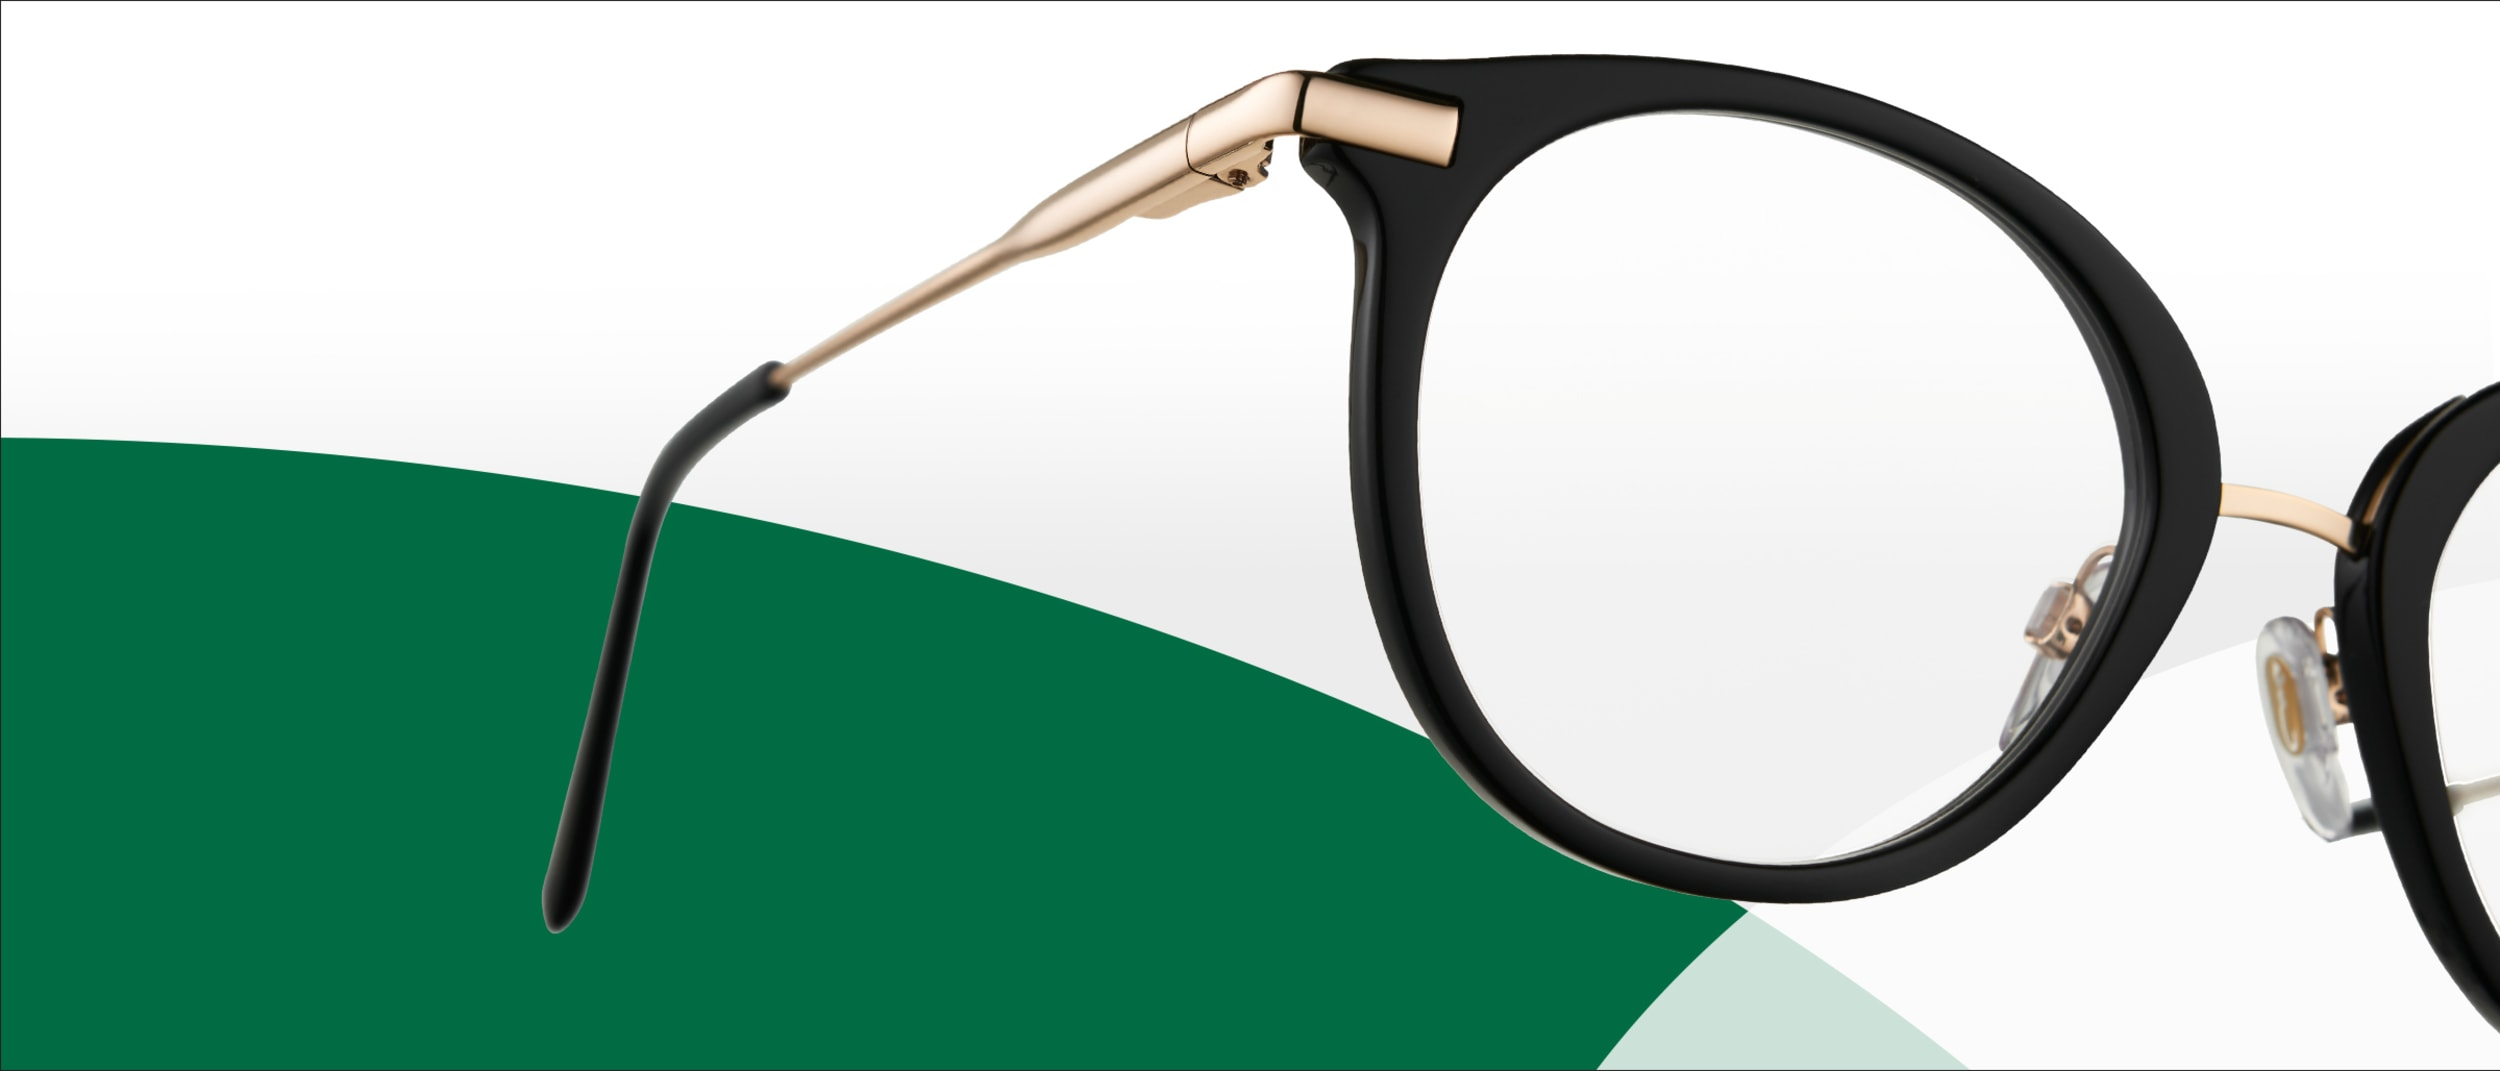 Specsavers: health fund members save $50 off lens options